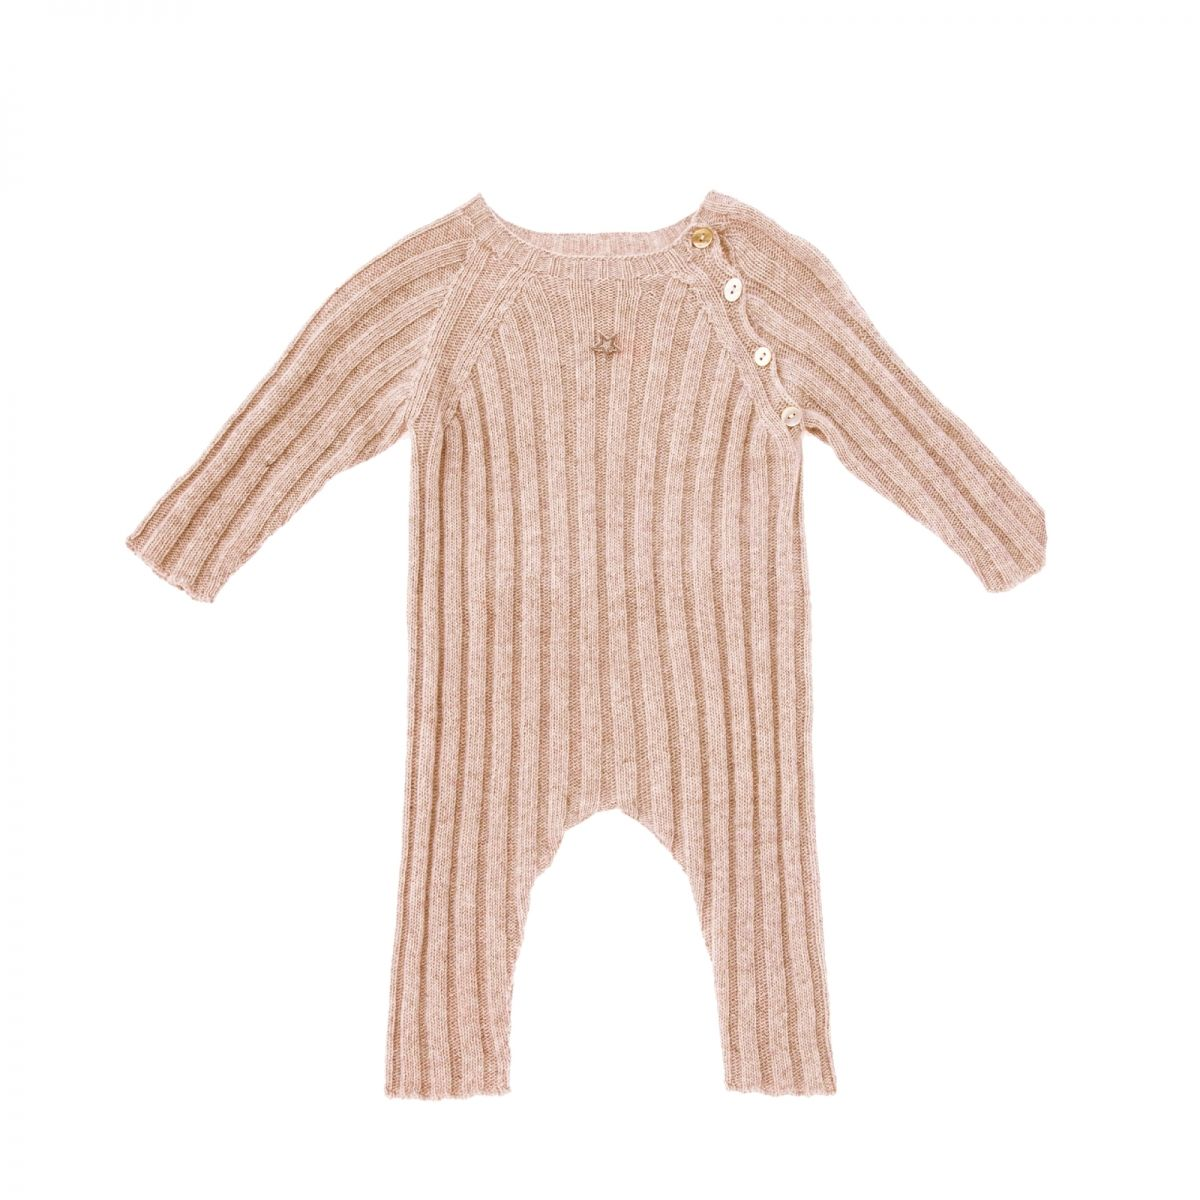 Tocoto Vintage - Kombinezon knitted ribbed różowy - 1